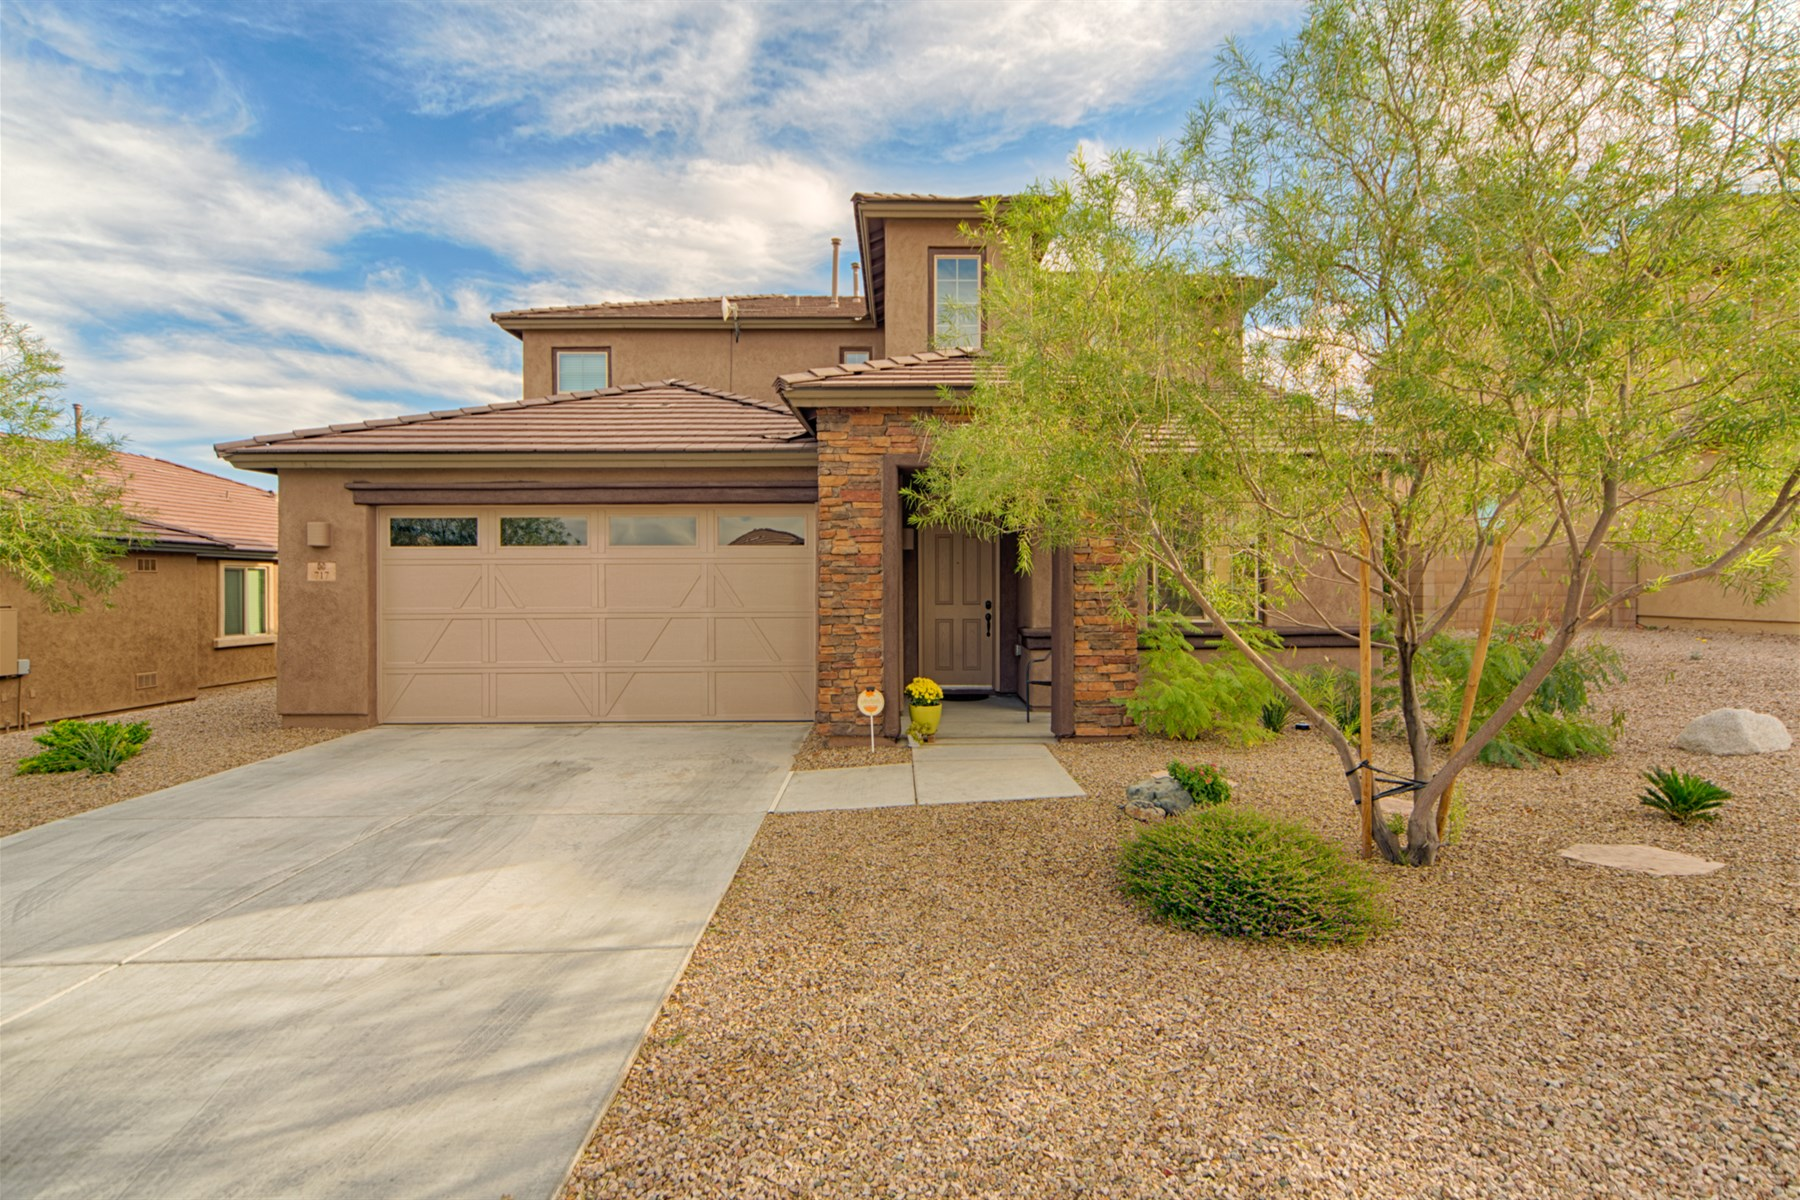 Single Family Home for Sale at Beautiful and freshly painted home in Vail 717 S Desert Haven Road Vail, Arizona, 85641 United States